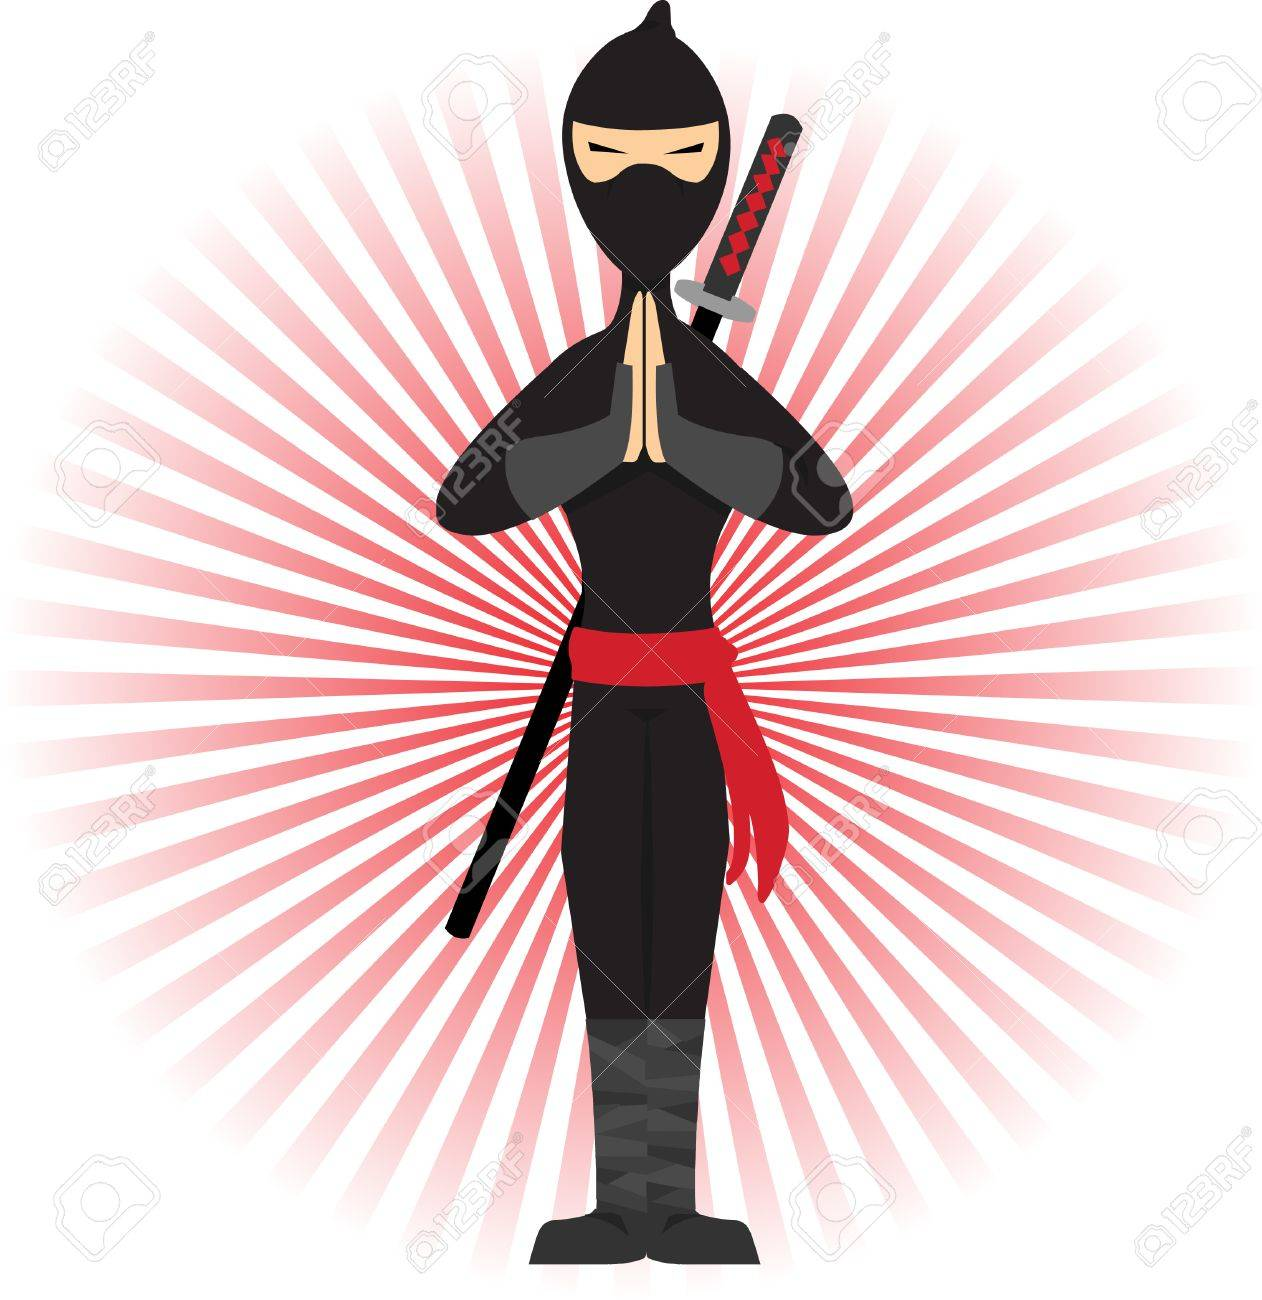 Ninja standing in pose accented by red rays Stock Vector - 5185685